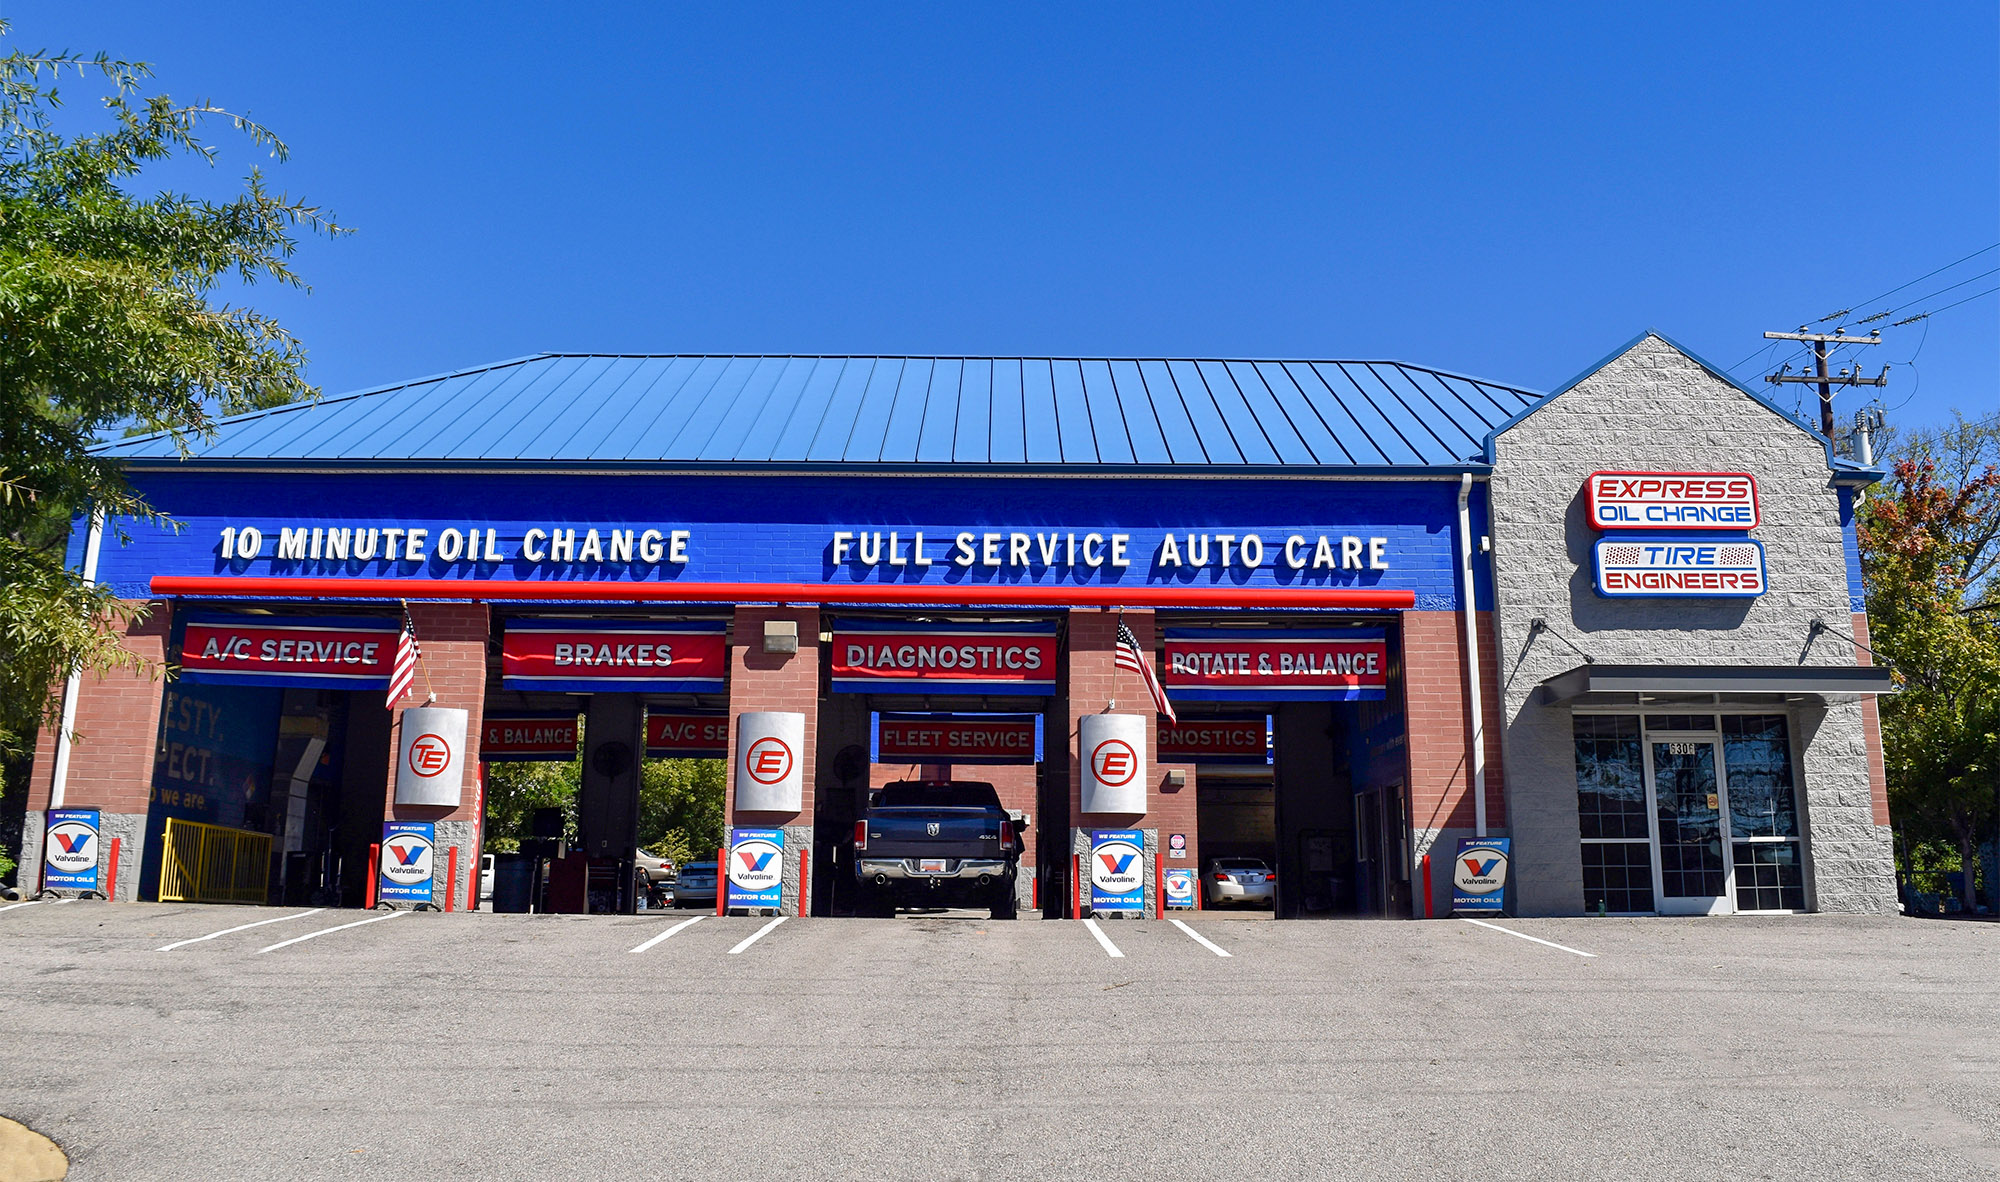 Express Oil Change & Tire Engineers Columbia, SC - Garners Ferry Road store